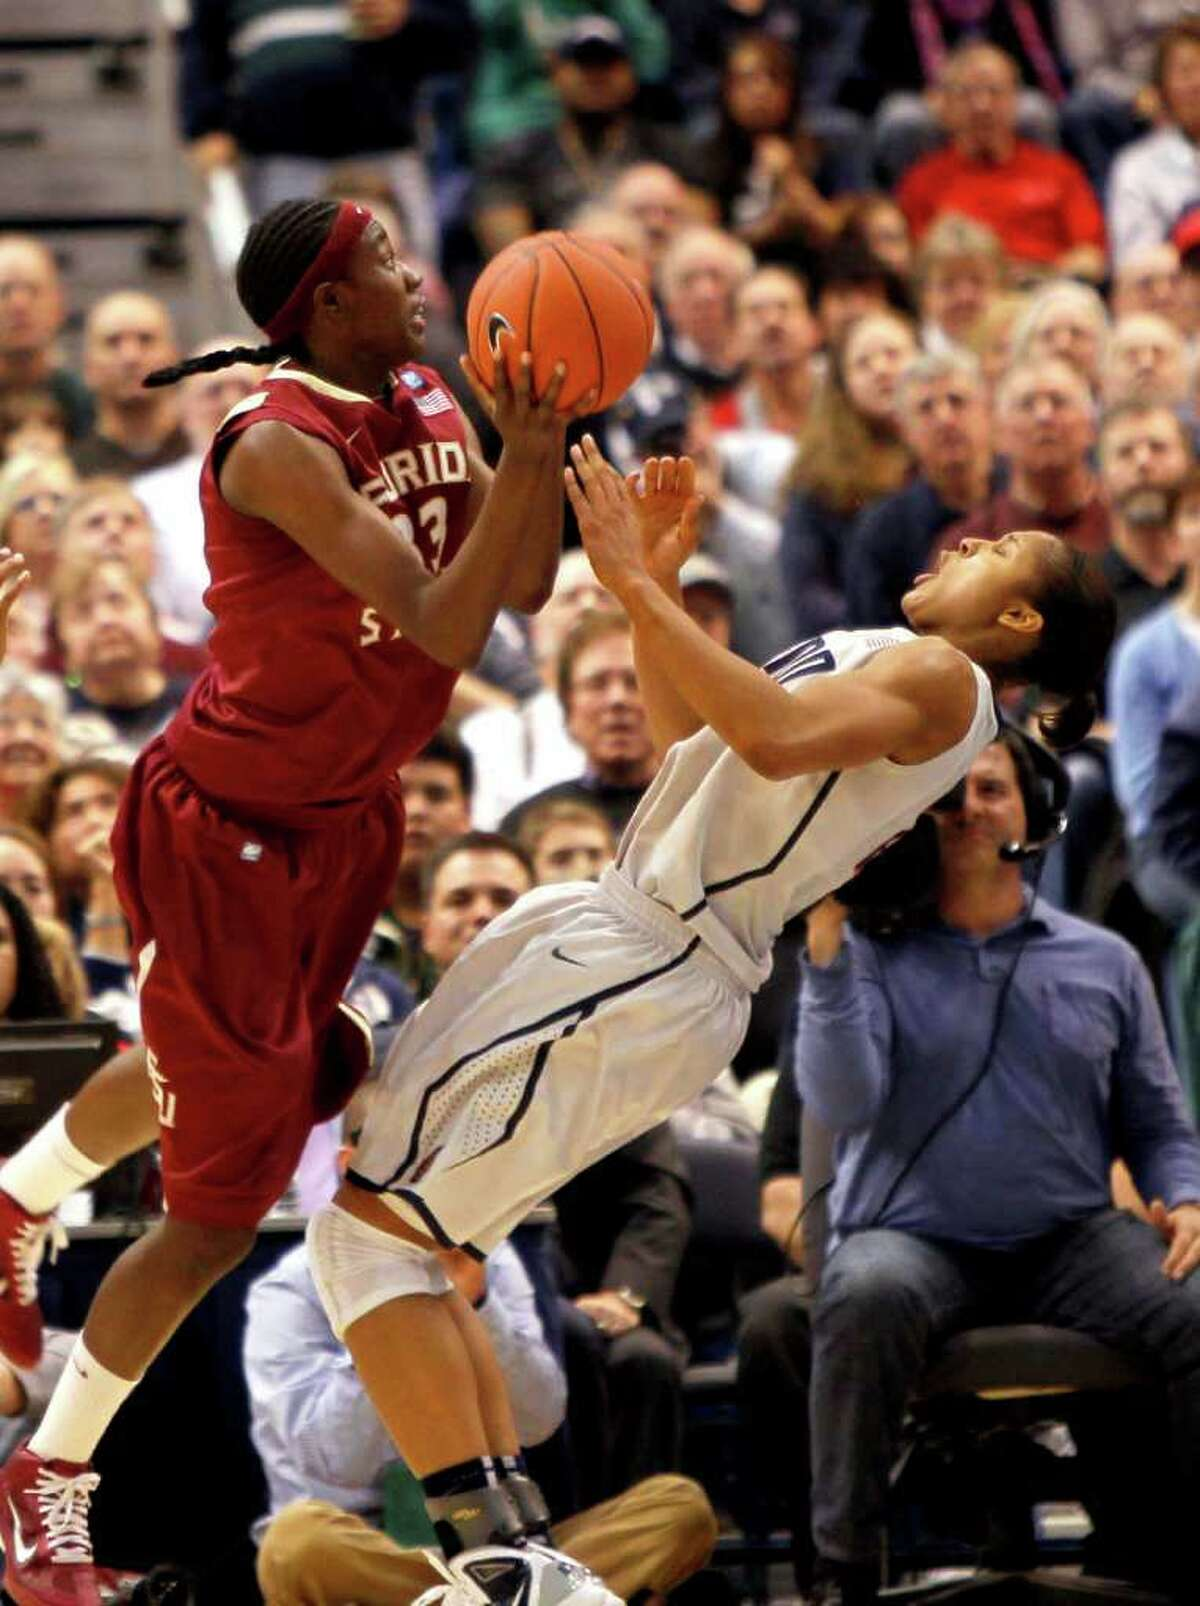 HARTFORD, CT - DECEMBER 21: Maya Moore #23 of the Connecticut is fouled by Natasha Howard #33 of the Florida State during the second half on December 21, 2010 in Hartford, Connecticut. (Photo by Jim Rogash/Getty Images) *** Local Caption *** Maya Moore;Natasha Howard